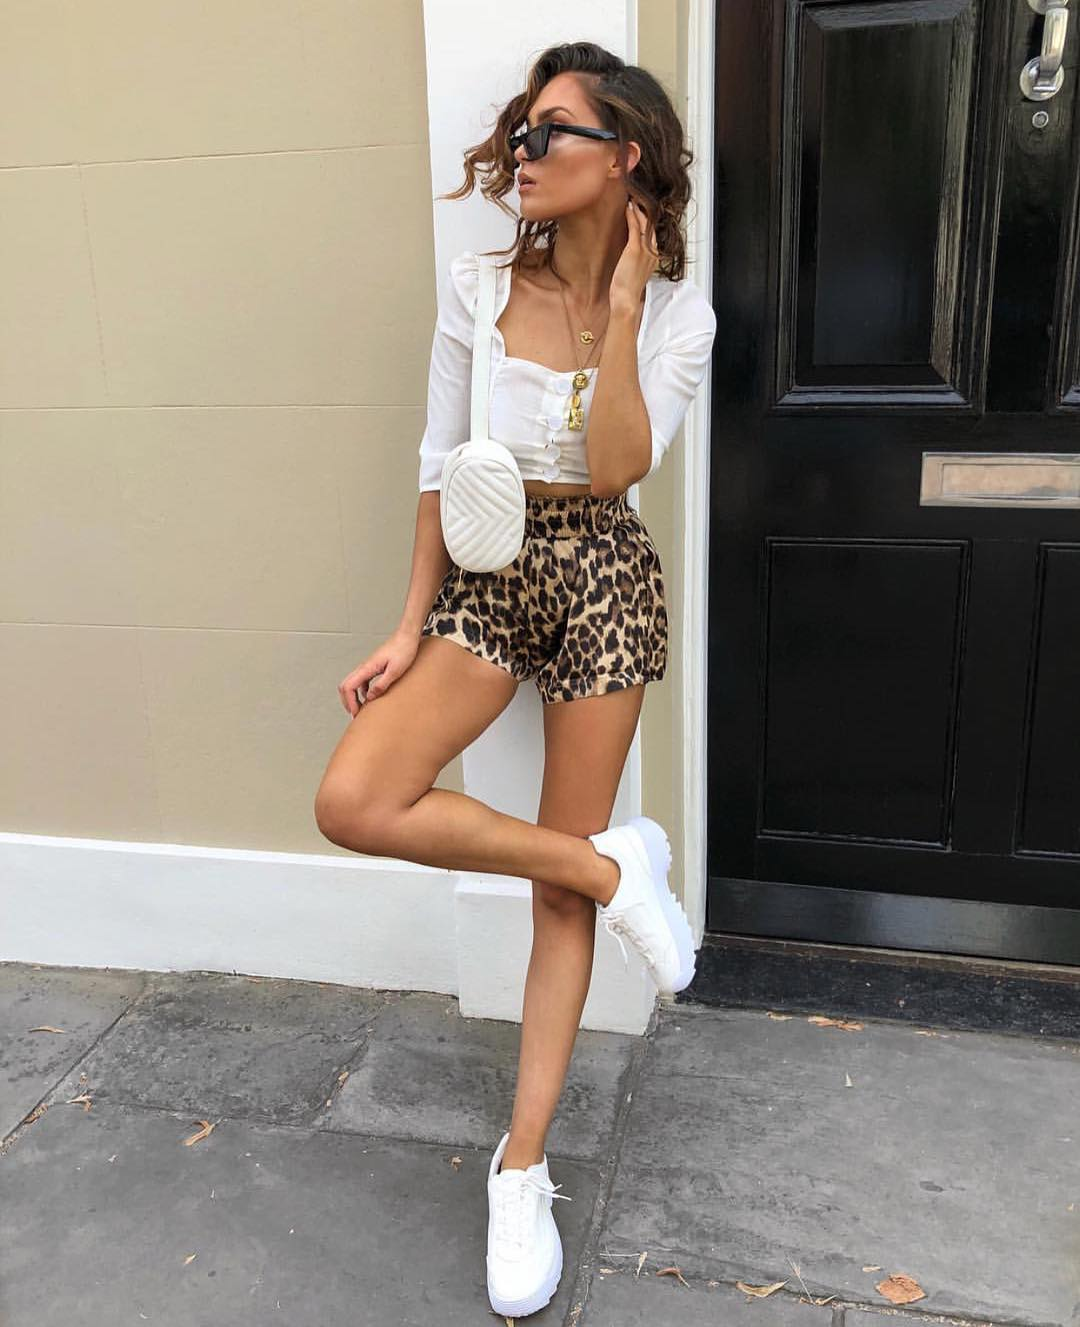 Summer Street Look: White Crop Blouse, Leopard Shorts And White Kicks 2020